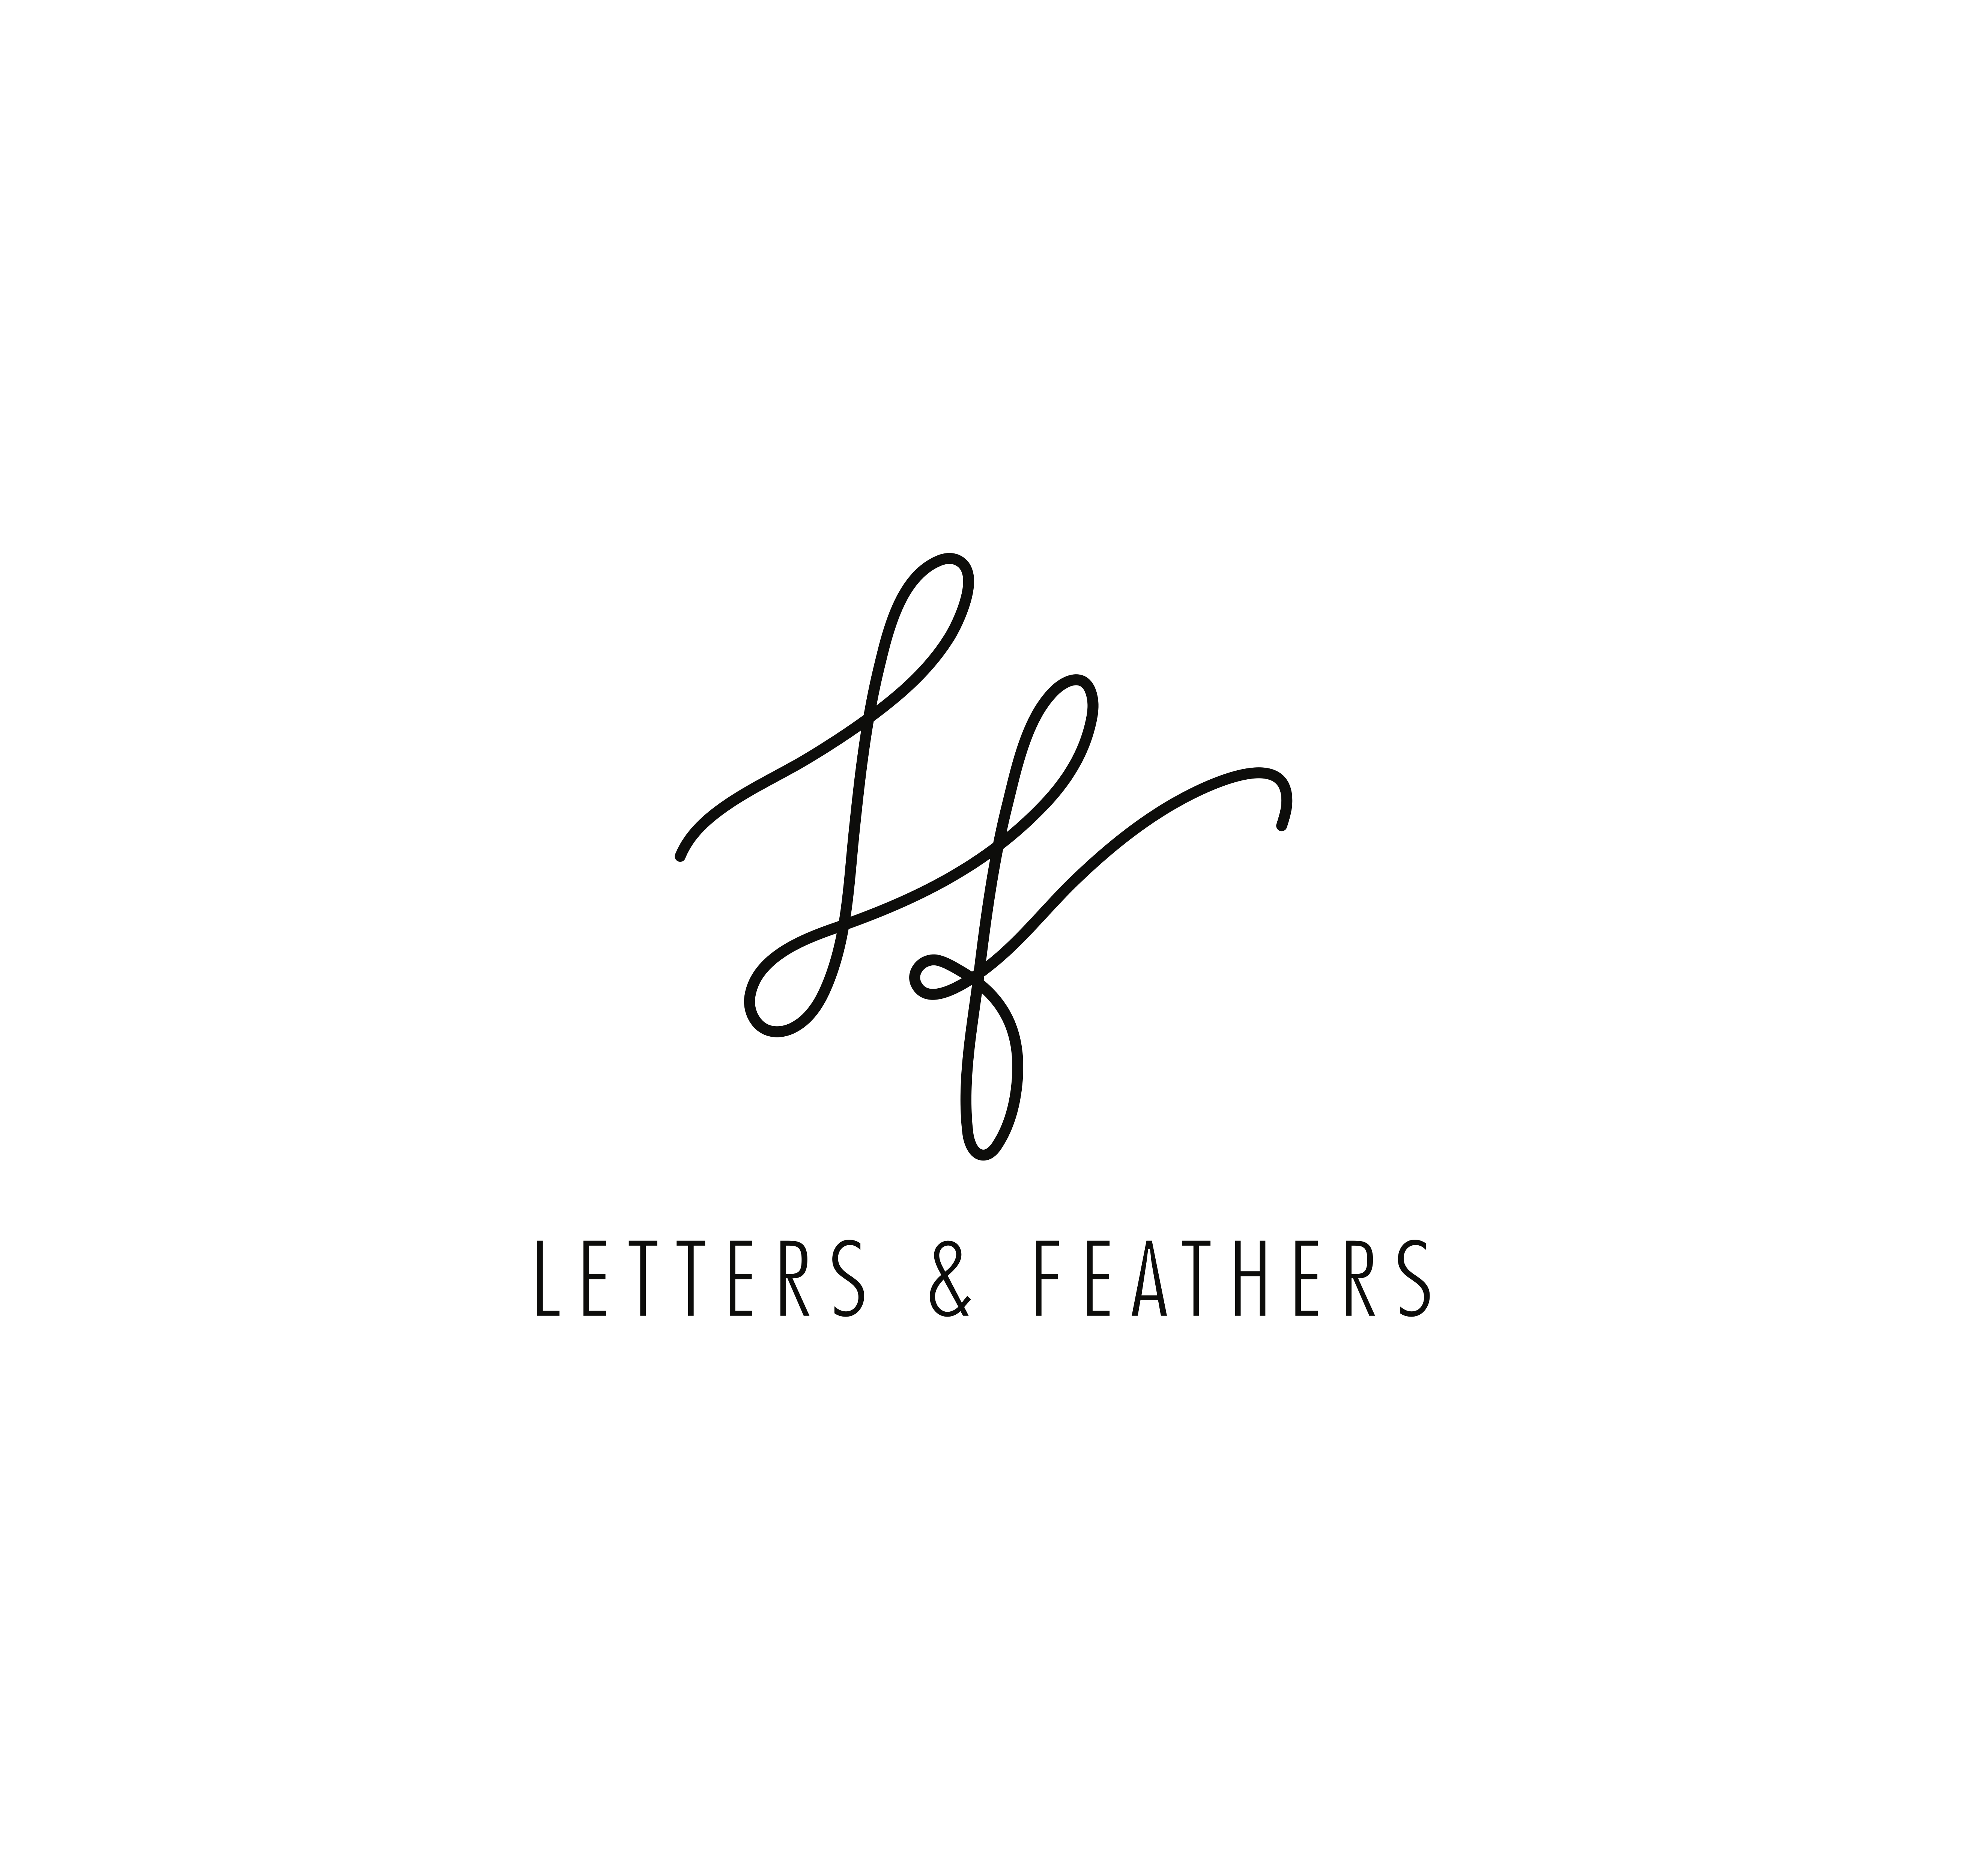 Letters & Feathers Logo